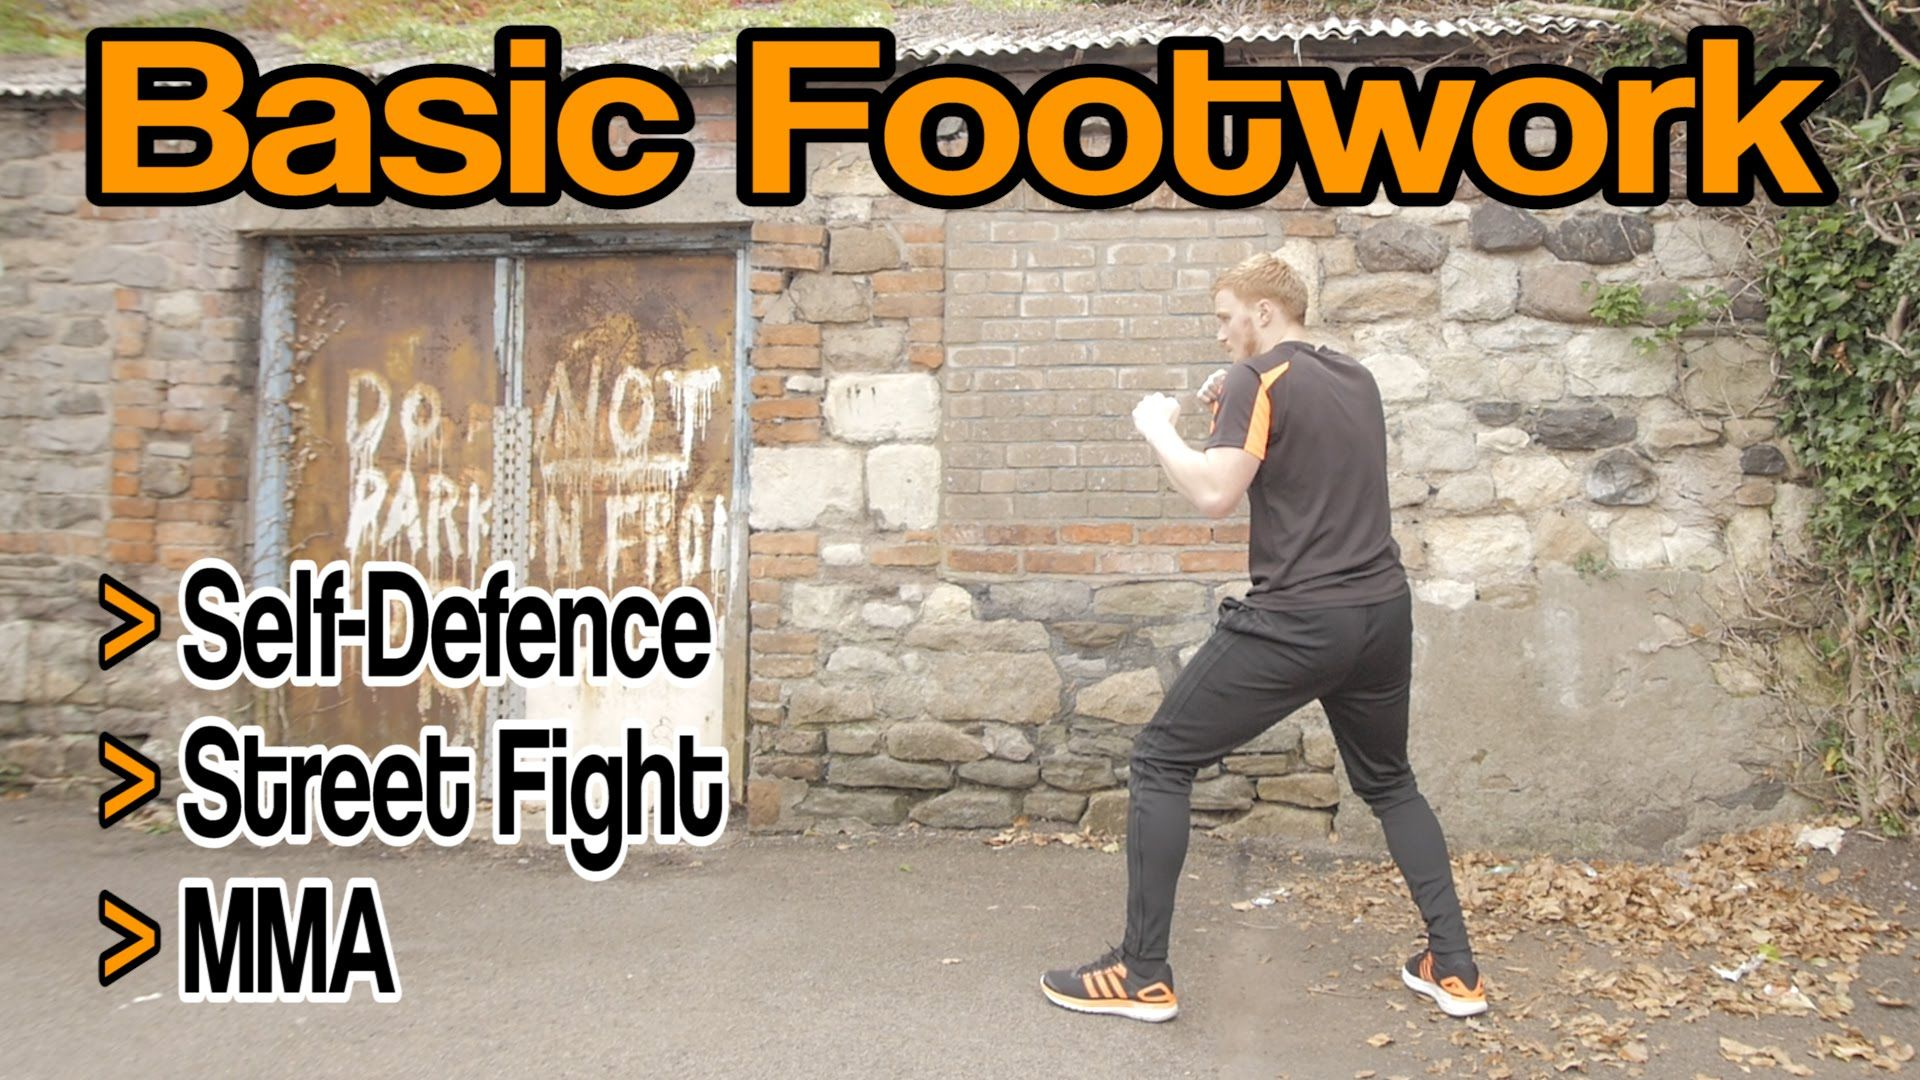 Basic Footwork For Self Defence Street Fight Mma Etc Gnt